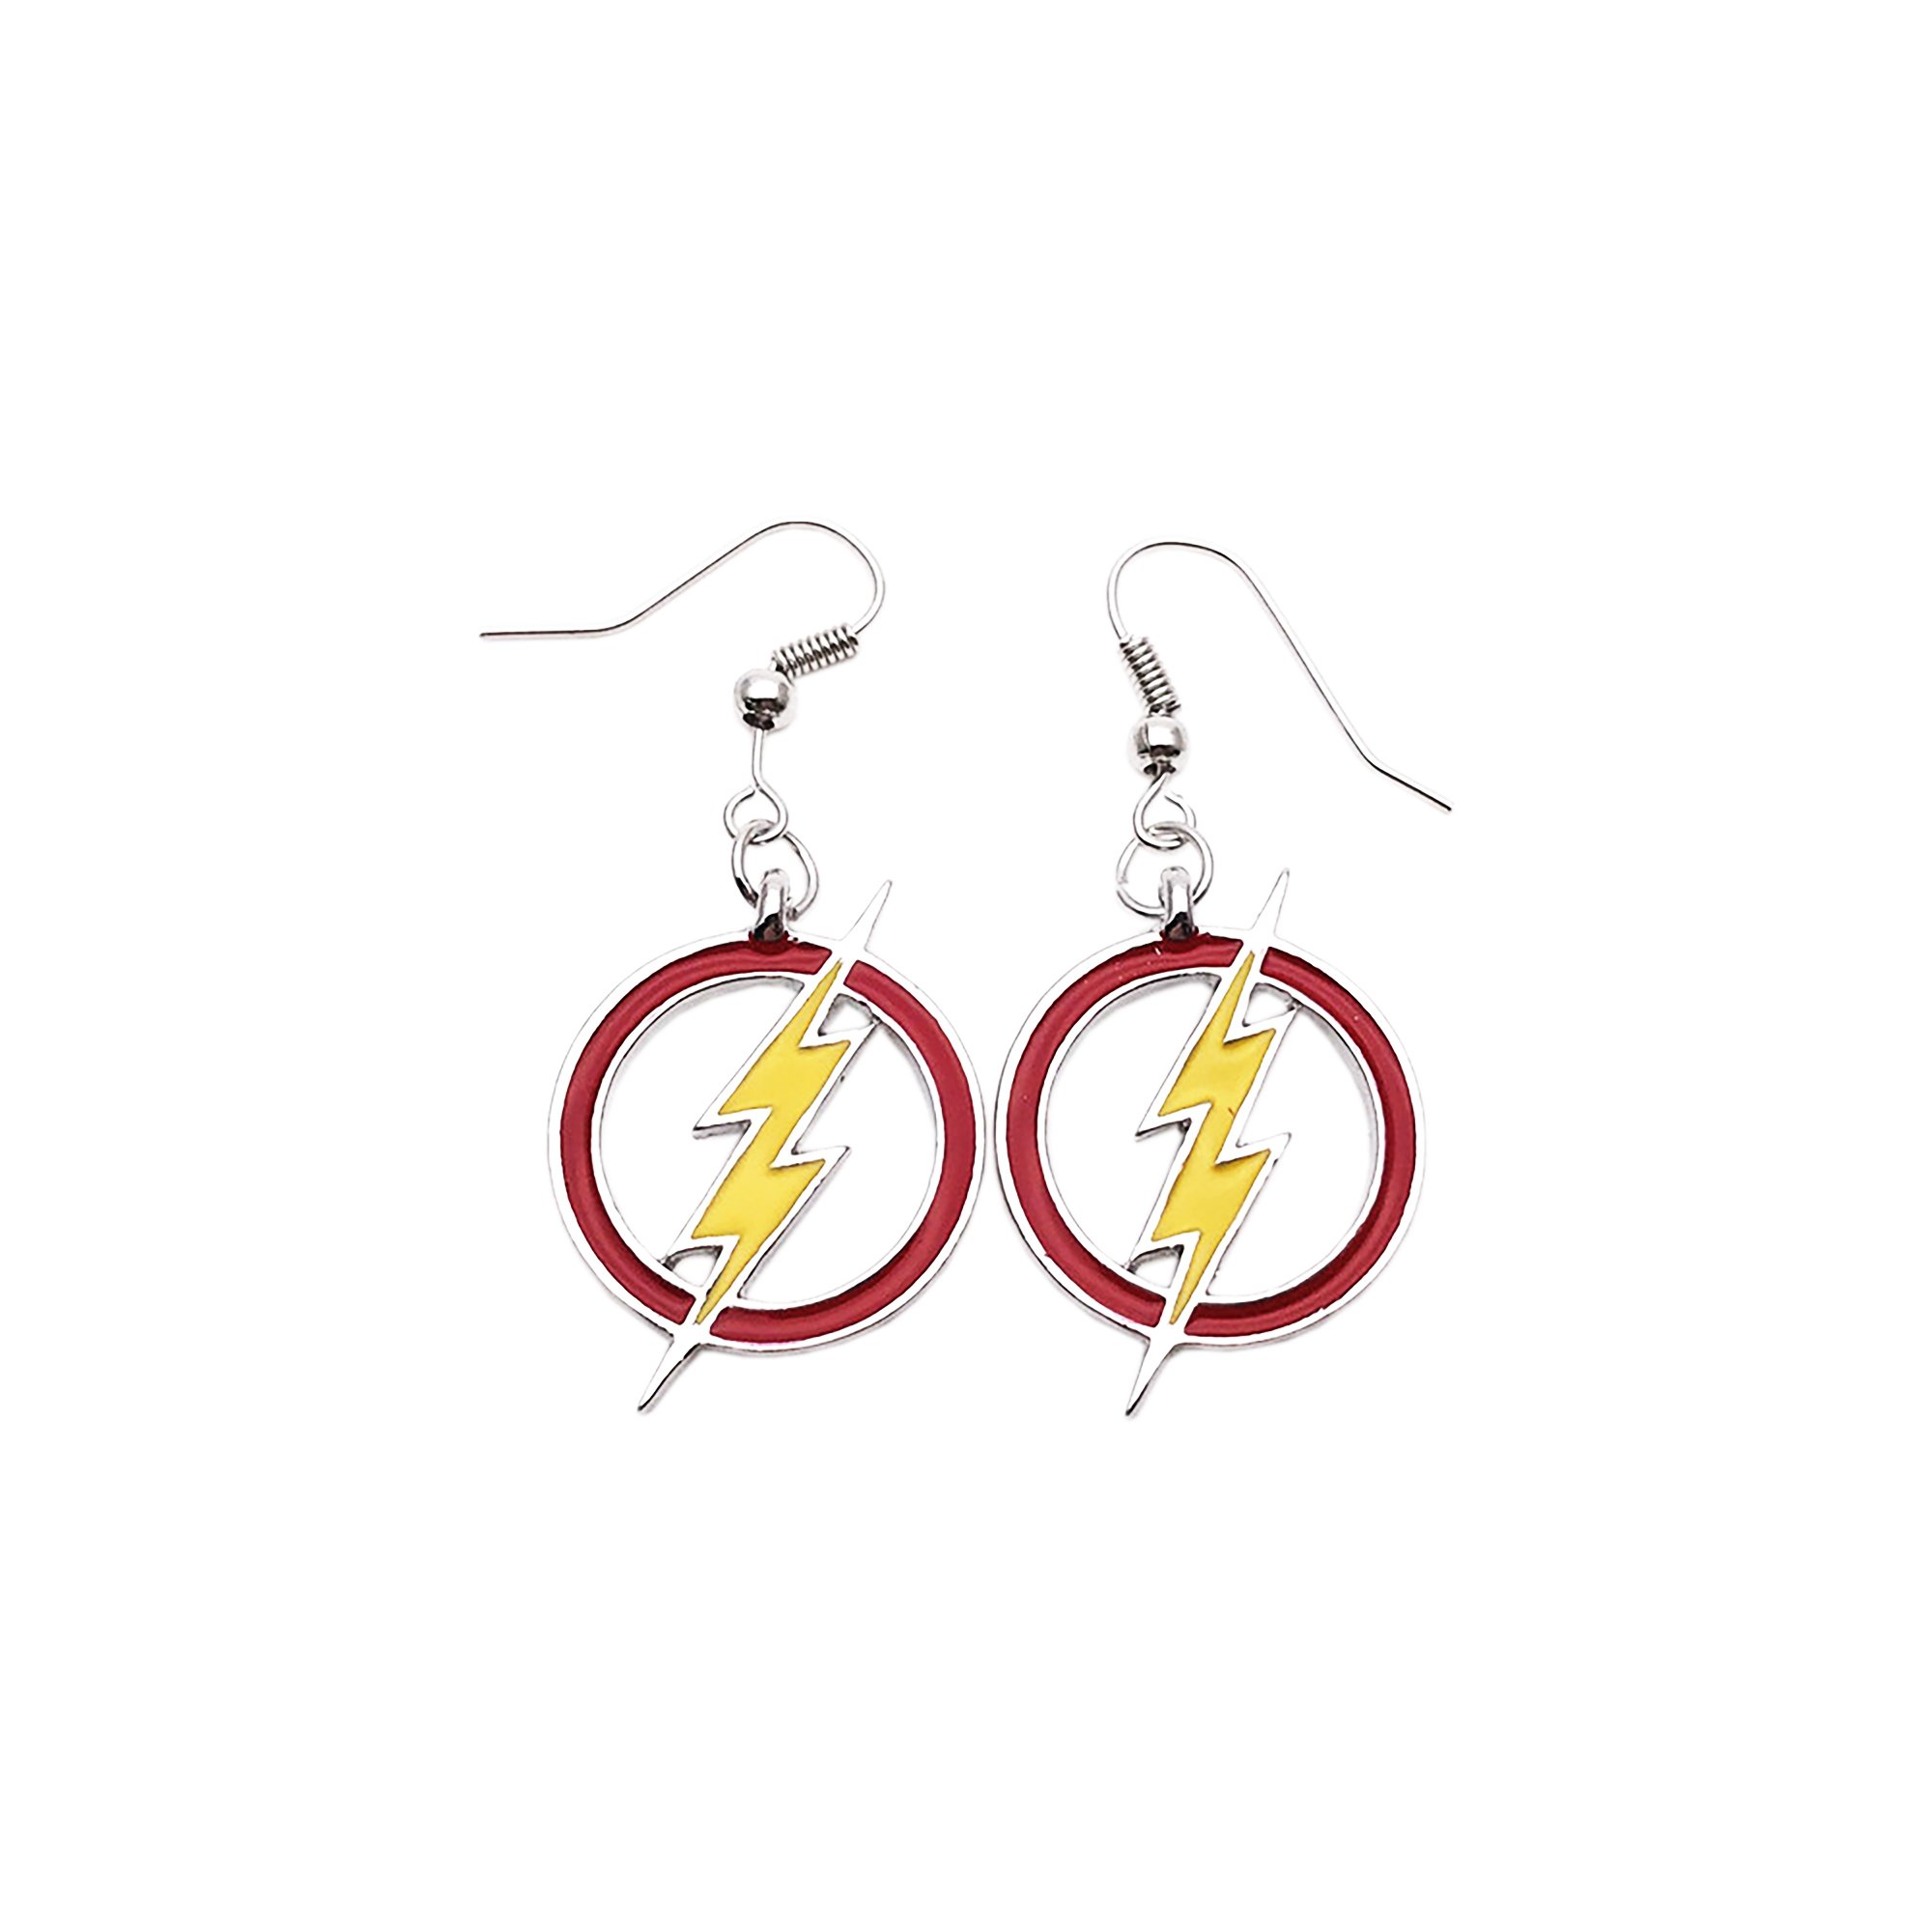 Outlander DC The Flash Logo Earring Dangles In Gift Box From